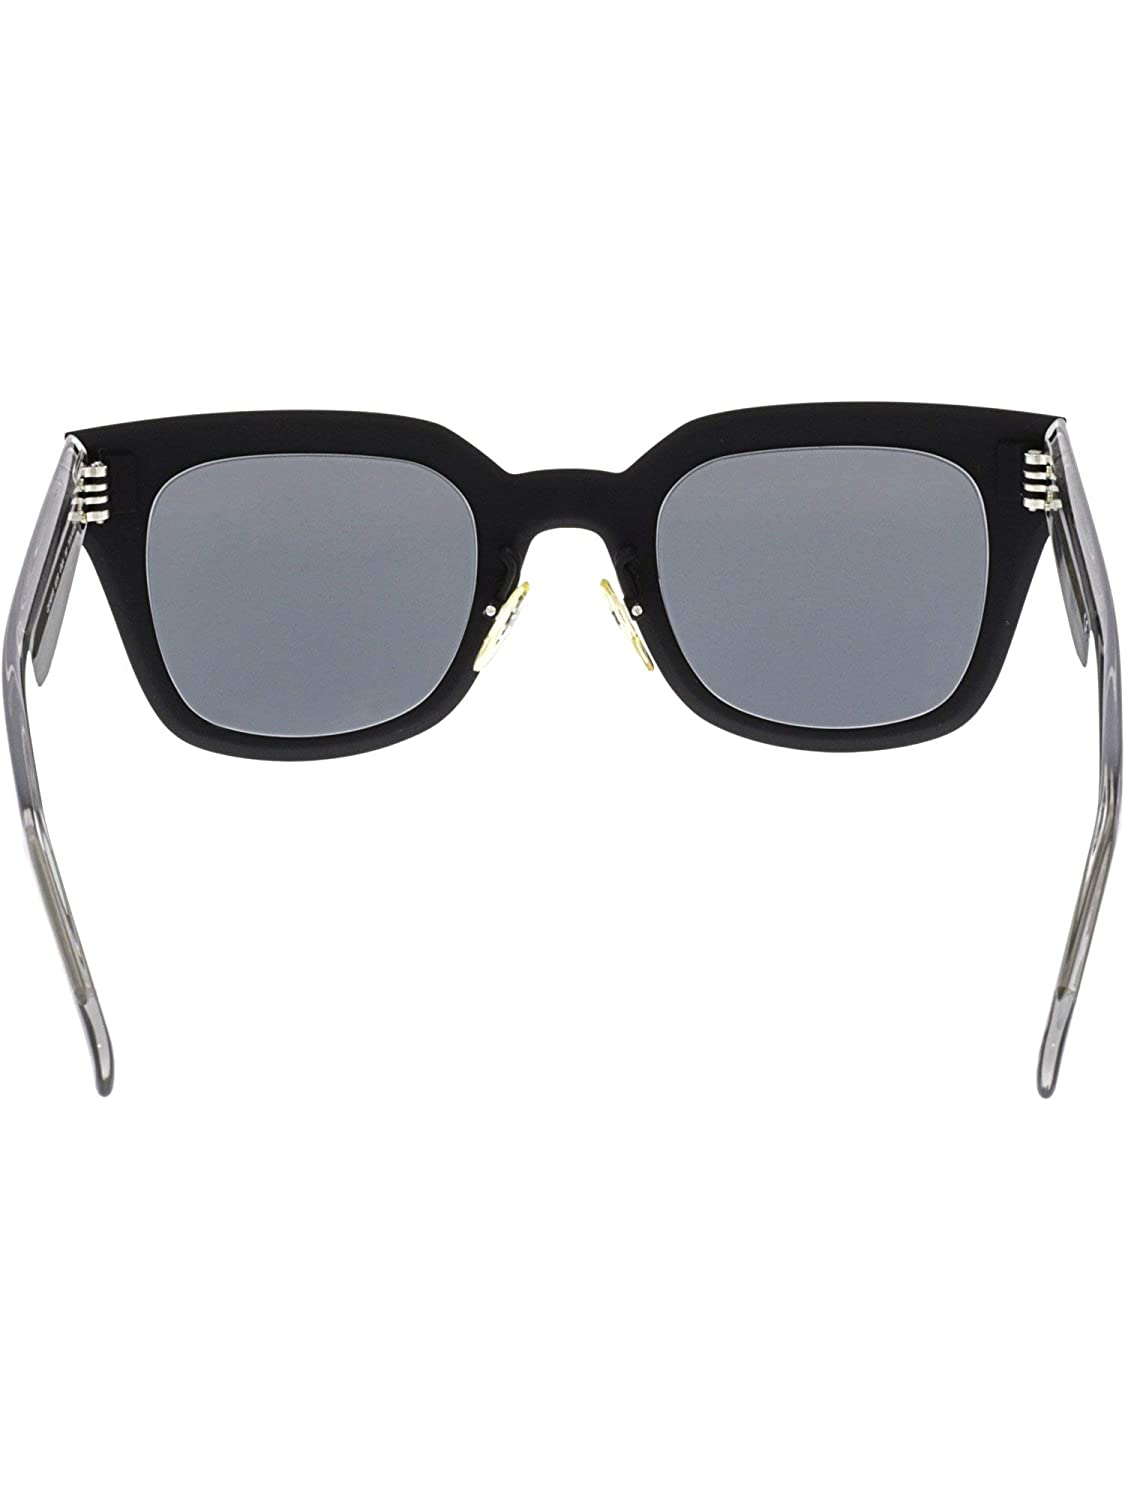 752b2f1b18c7 Celine Sunglasses Cl 41451  S 0807 Black IR gray blue lens at Amazon Men s  Clothing store